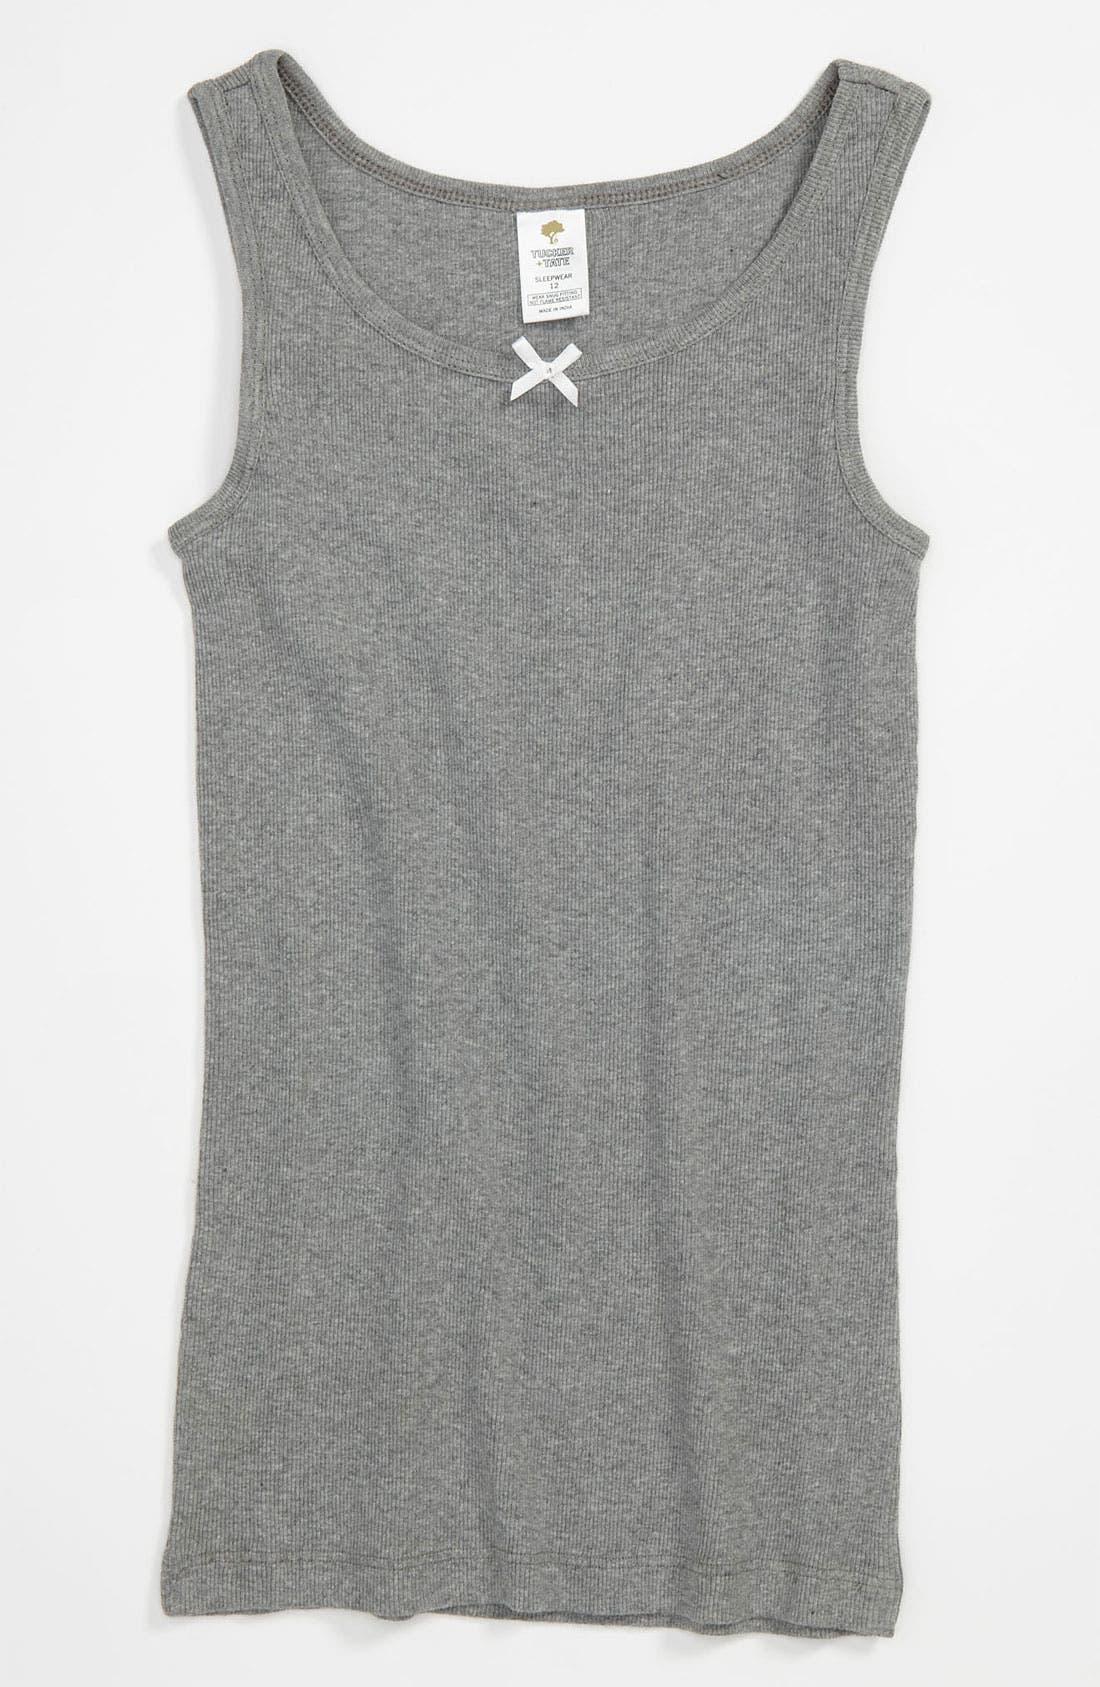 Alternate Image 1 Selected - Tucker + Tate Fitted Tank Top (Little Girls & Big Girls)